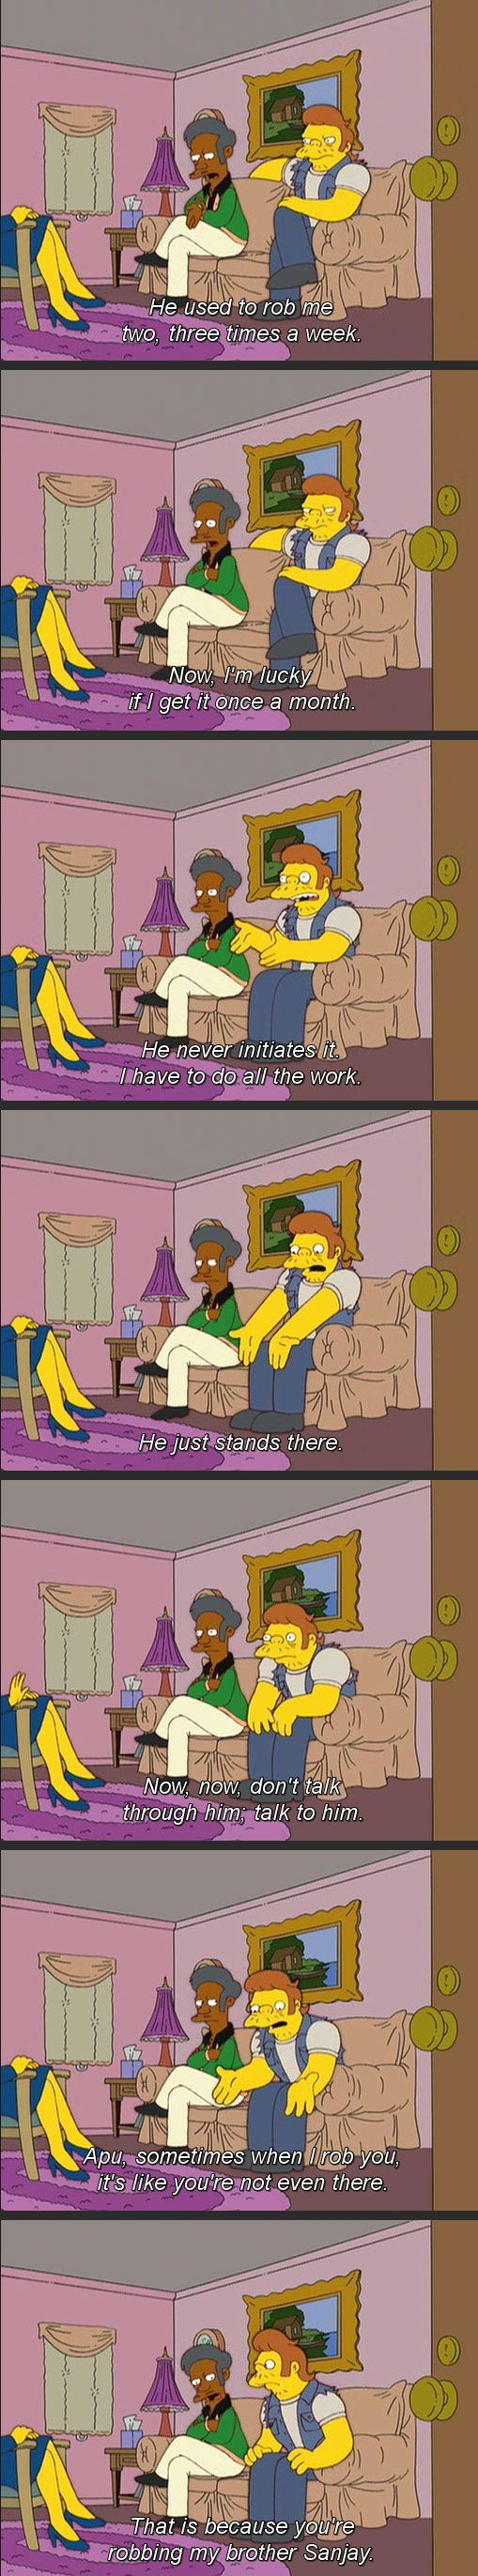 One of my favorite moments in The Simpsons // funny pictures - funny photos - funny images - funny pics - funny quotes - #lol #humor #funnypictures